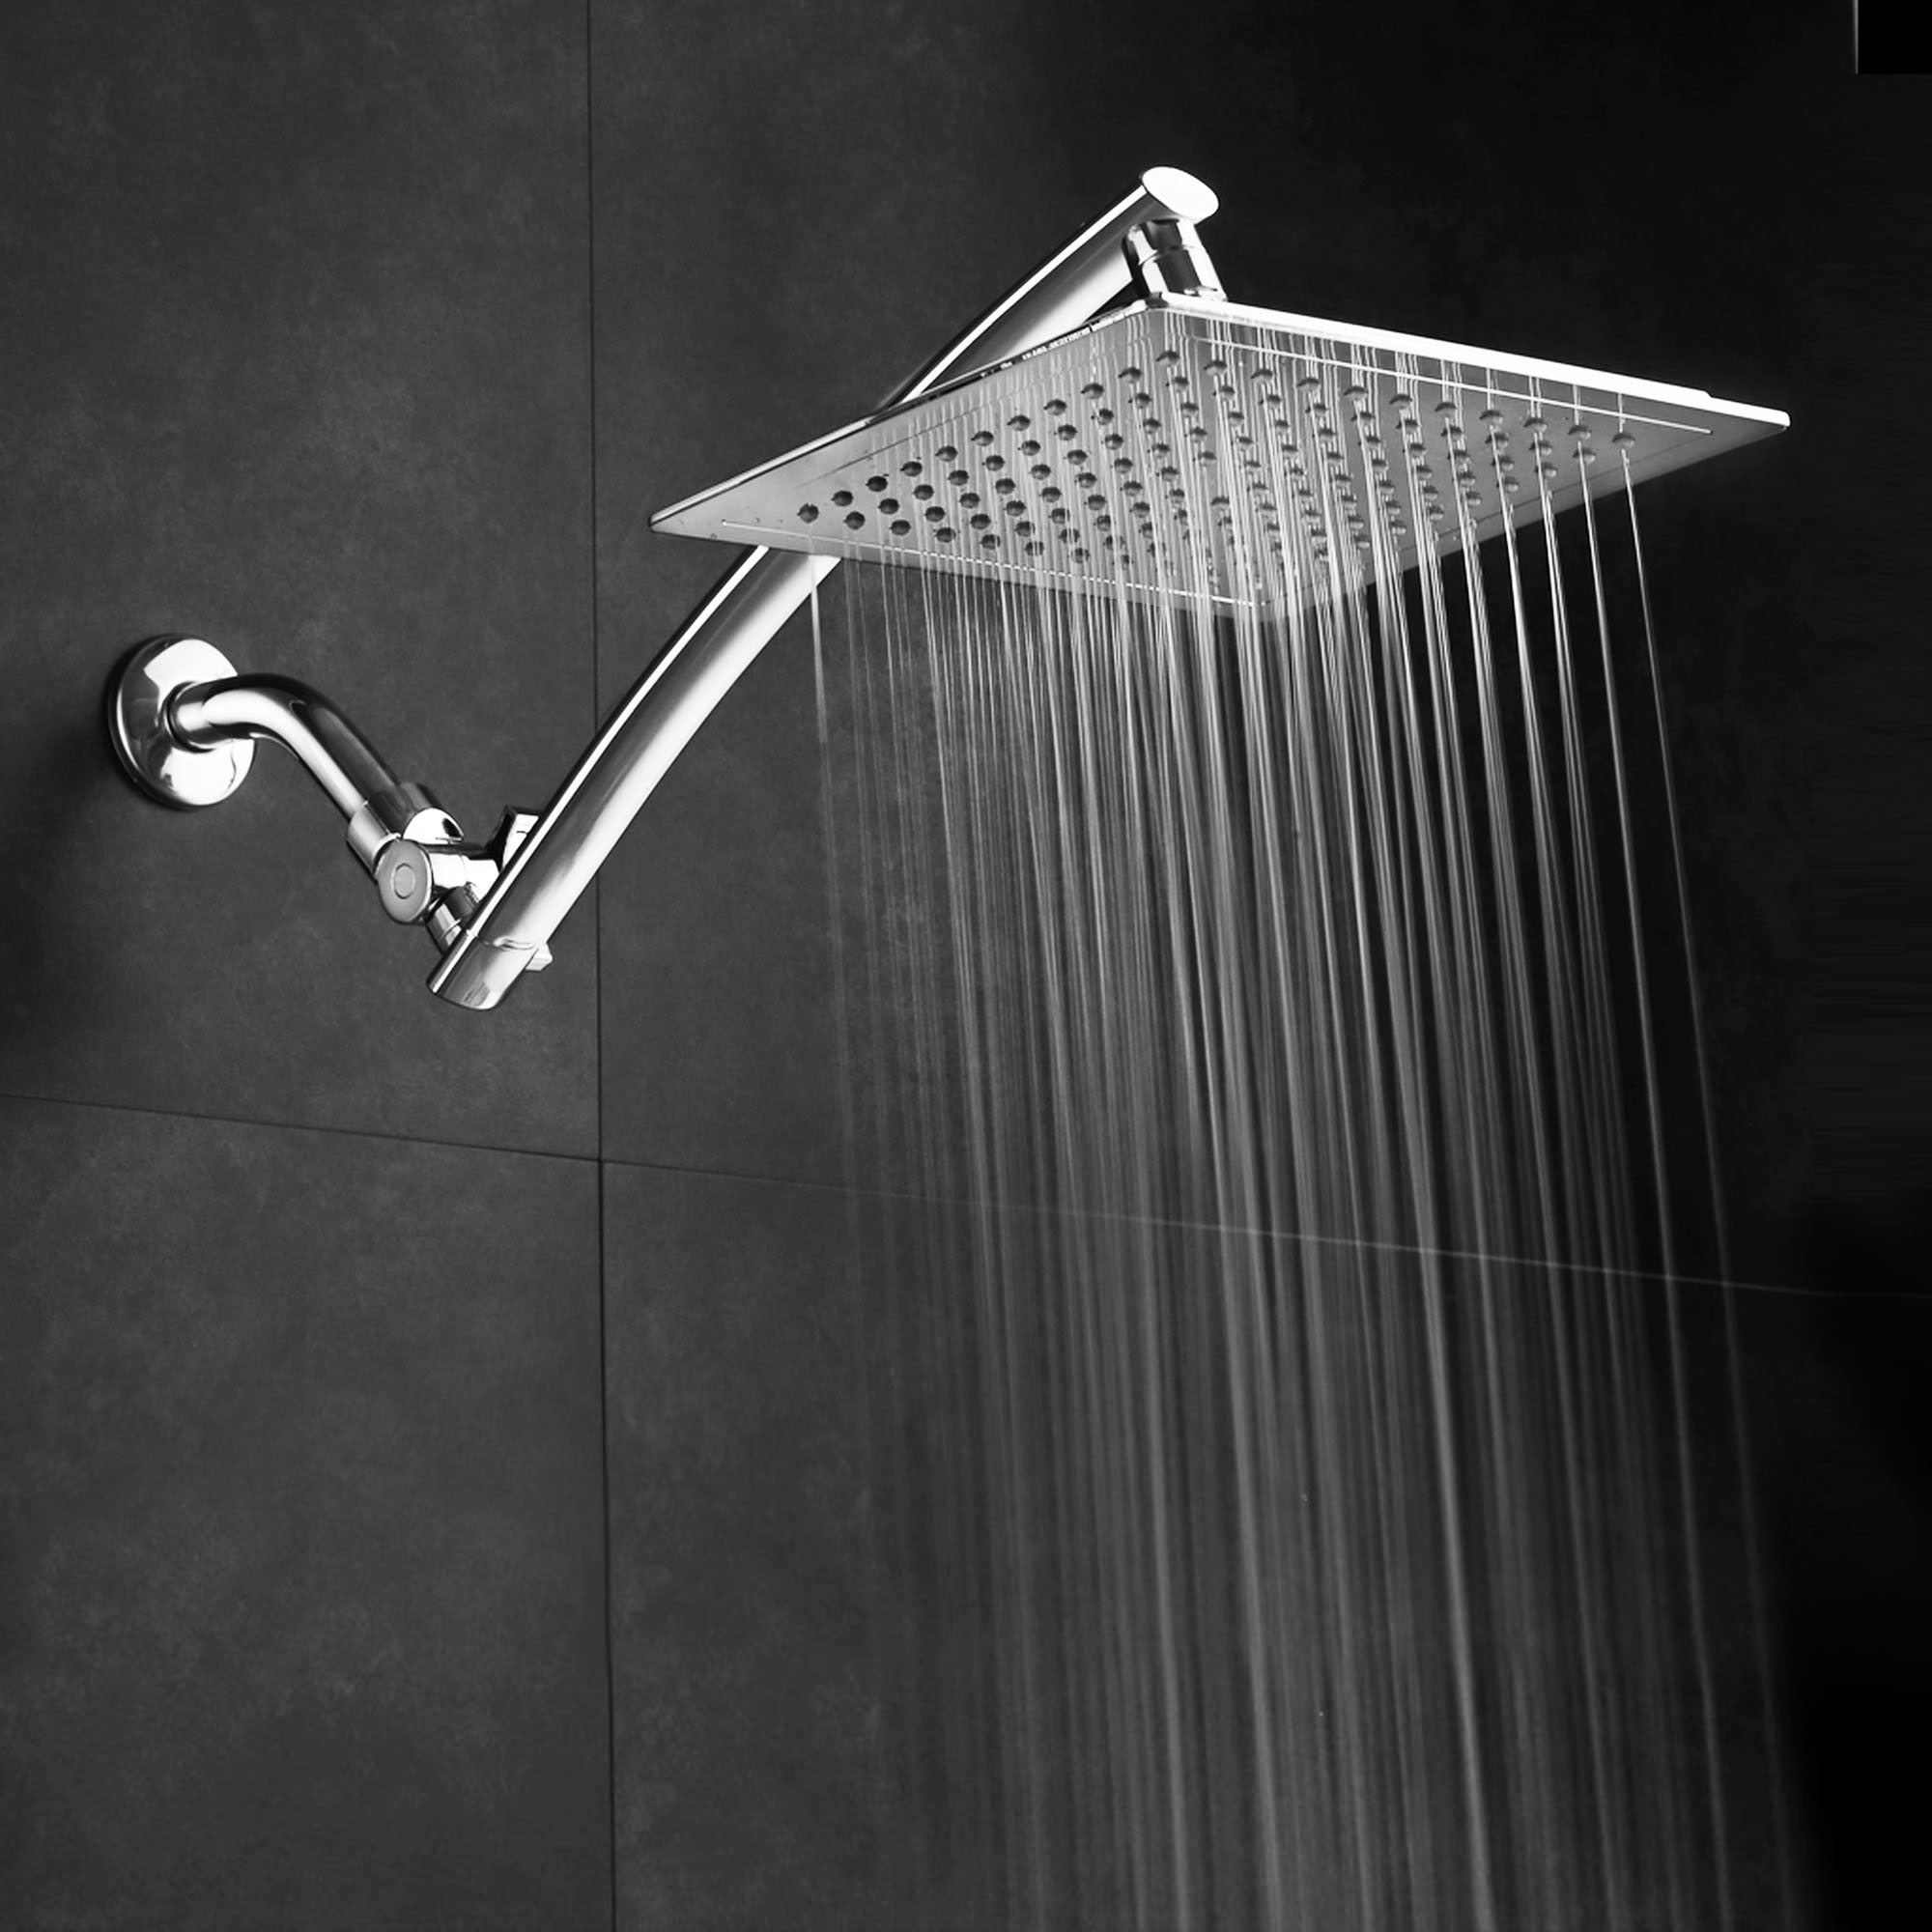 Razor™ by AquaSpa® Mega Size 9-inch Chrome Face Square Rainfall Shower Head with Arch Design 15-inch Stainless Steel Extension Arm / Premium Chrome